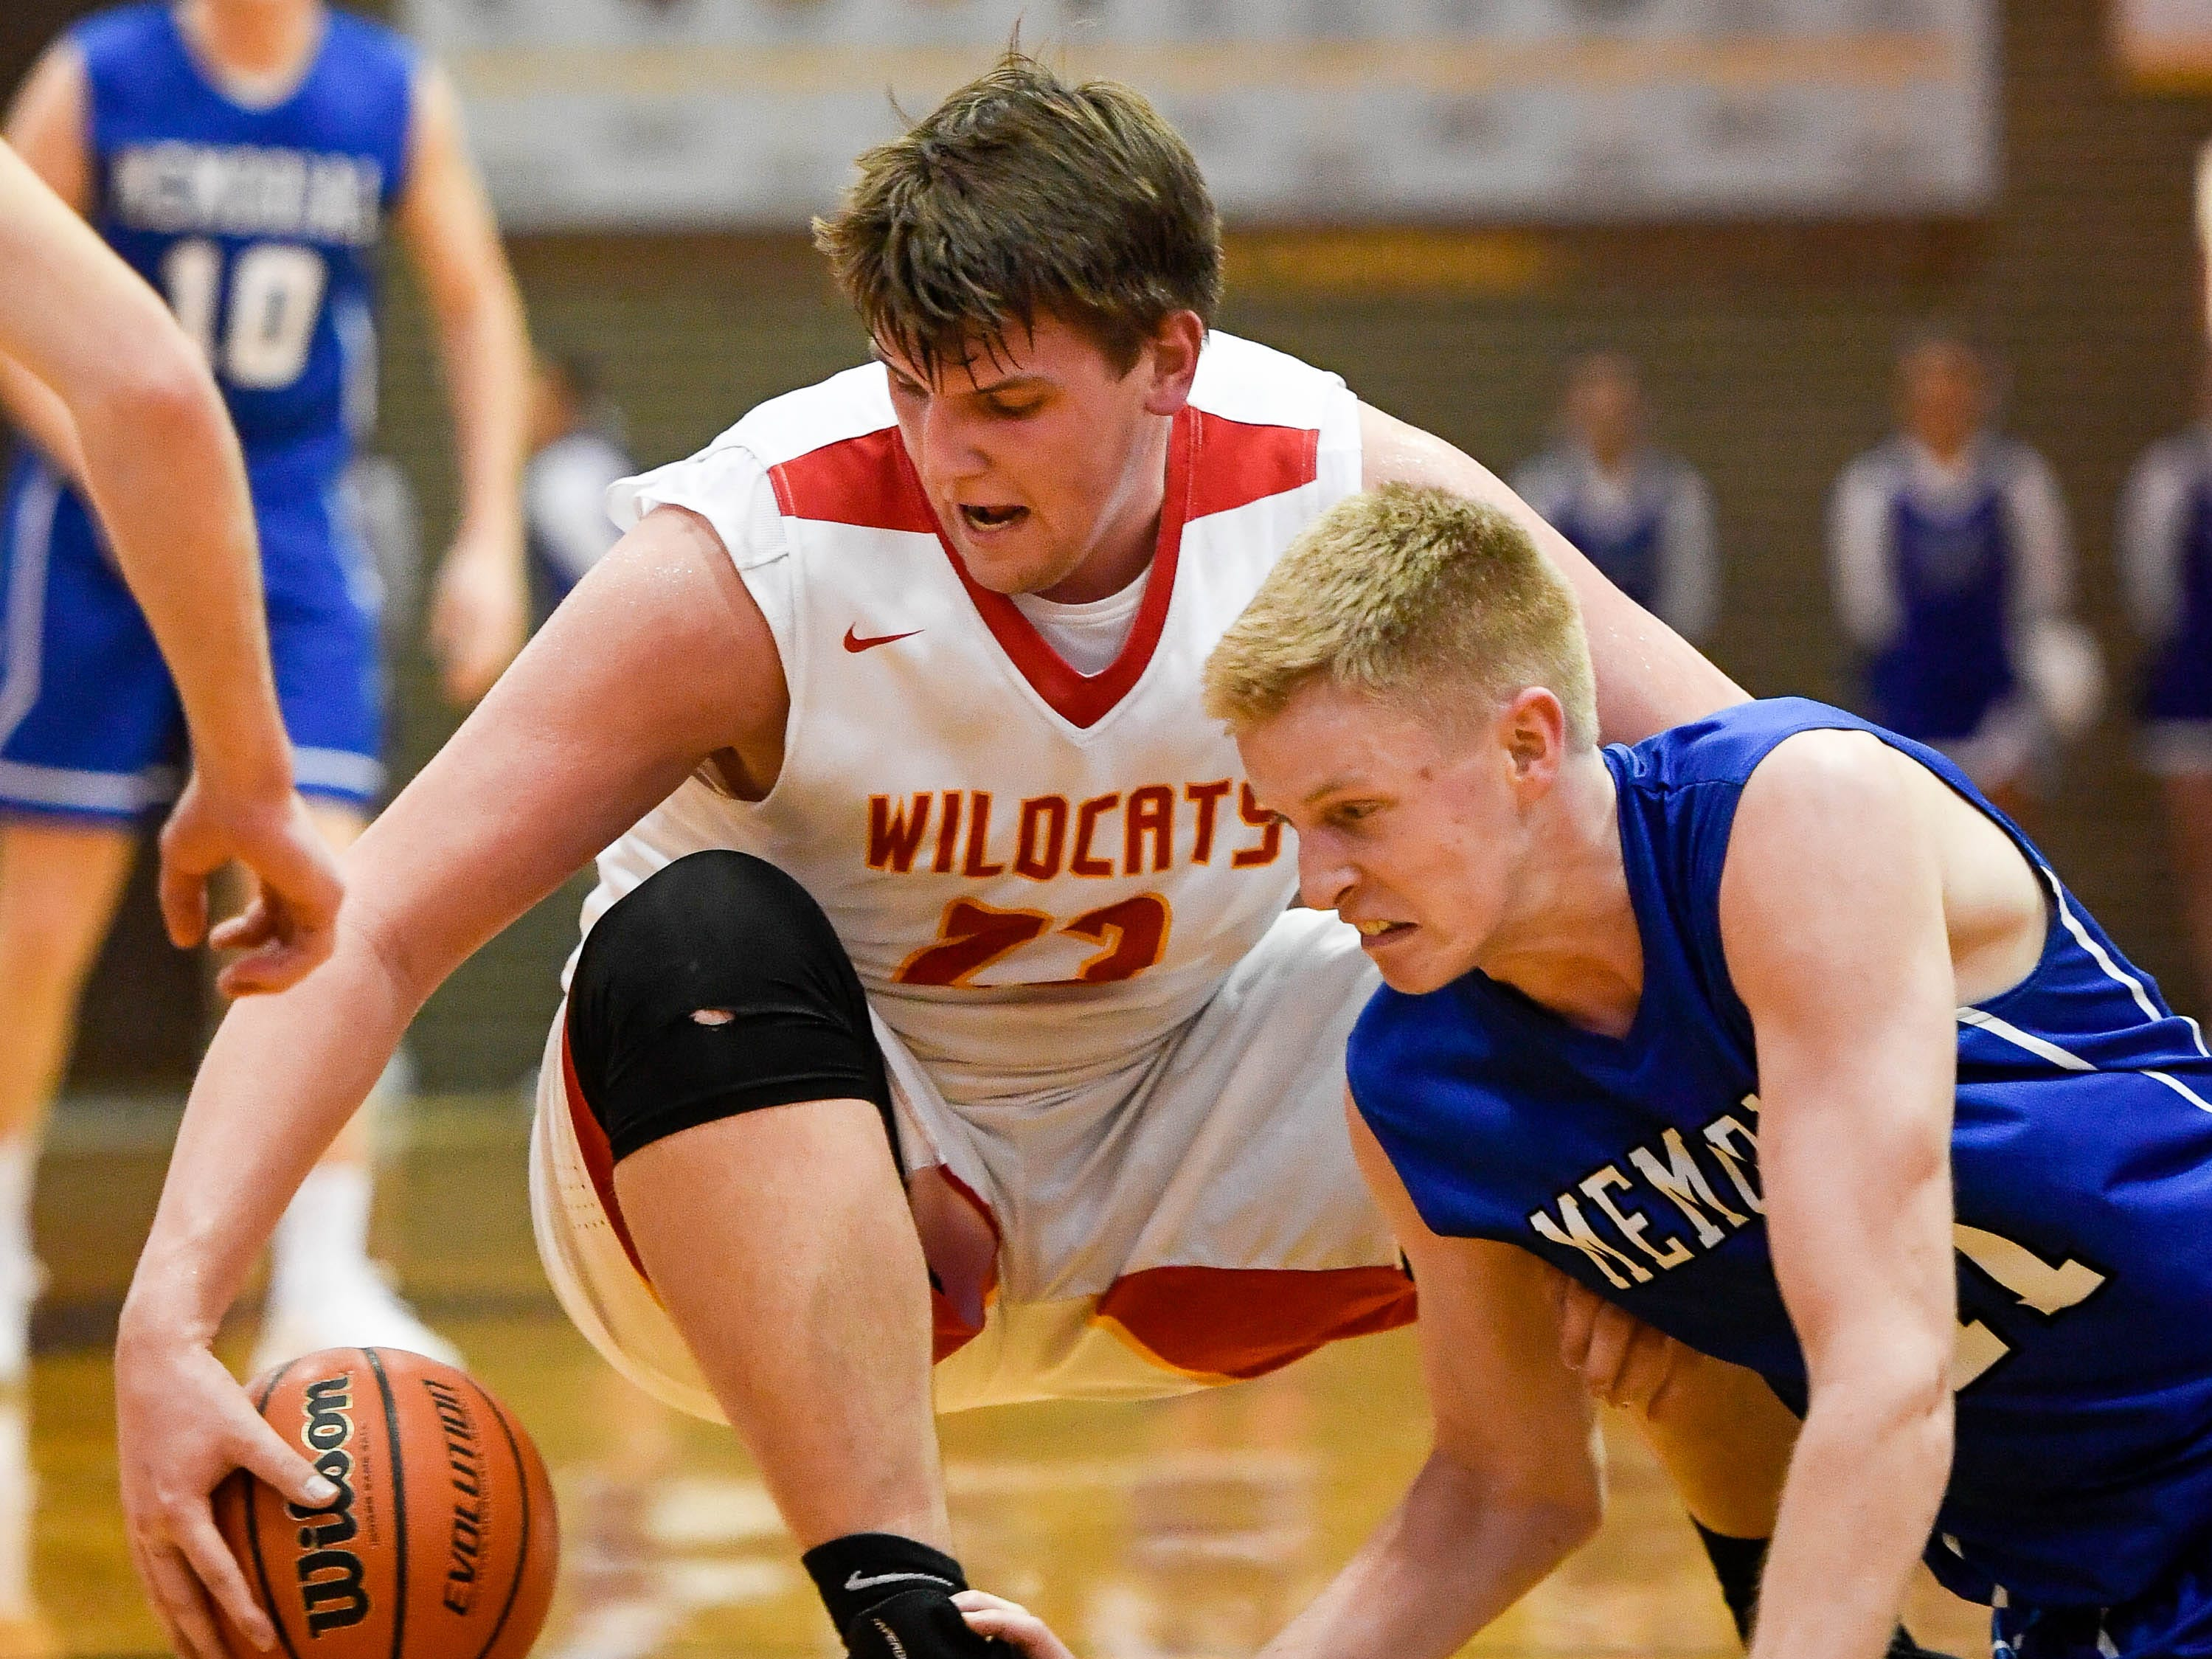 Mater Dei's Logan Carter (23) and Memorial's Sam DeVault (41) scramble for a loose ball as the Memorial Tigers play the Mater Dei Wildcats in the Southern Indiana Athletic Conference semi-finals at Central High Thursday, January 10, 2019.